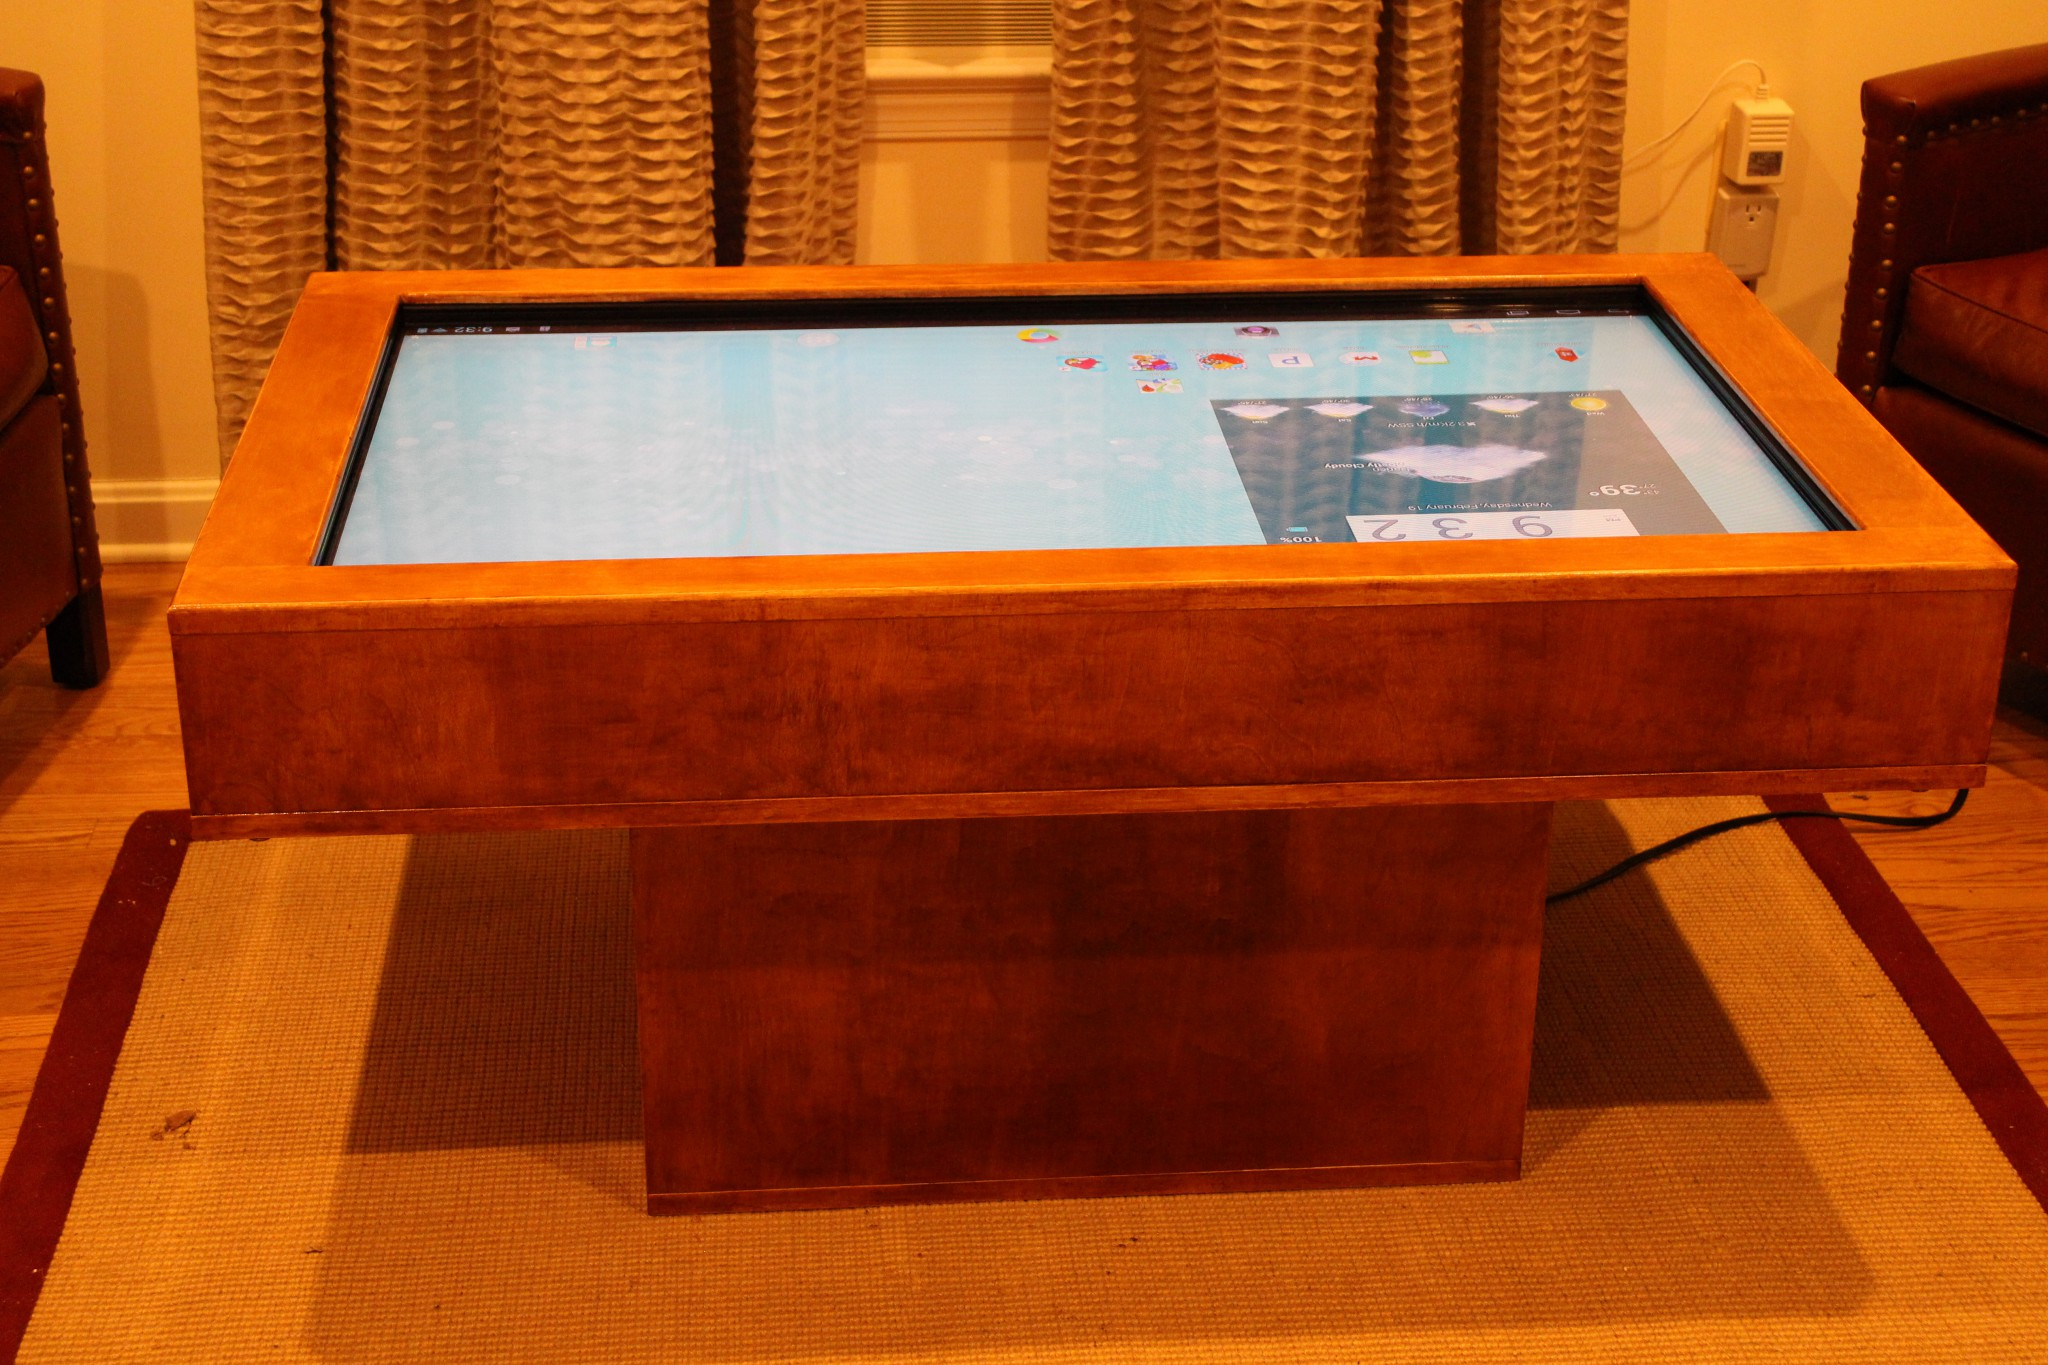 Touch Screen Coffee Table 2 0 – Automated Maker